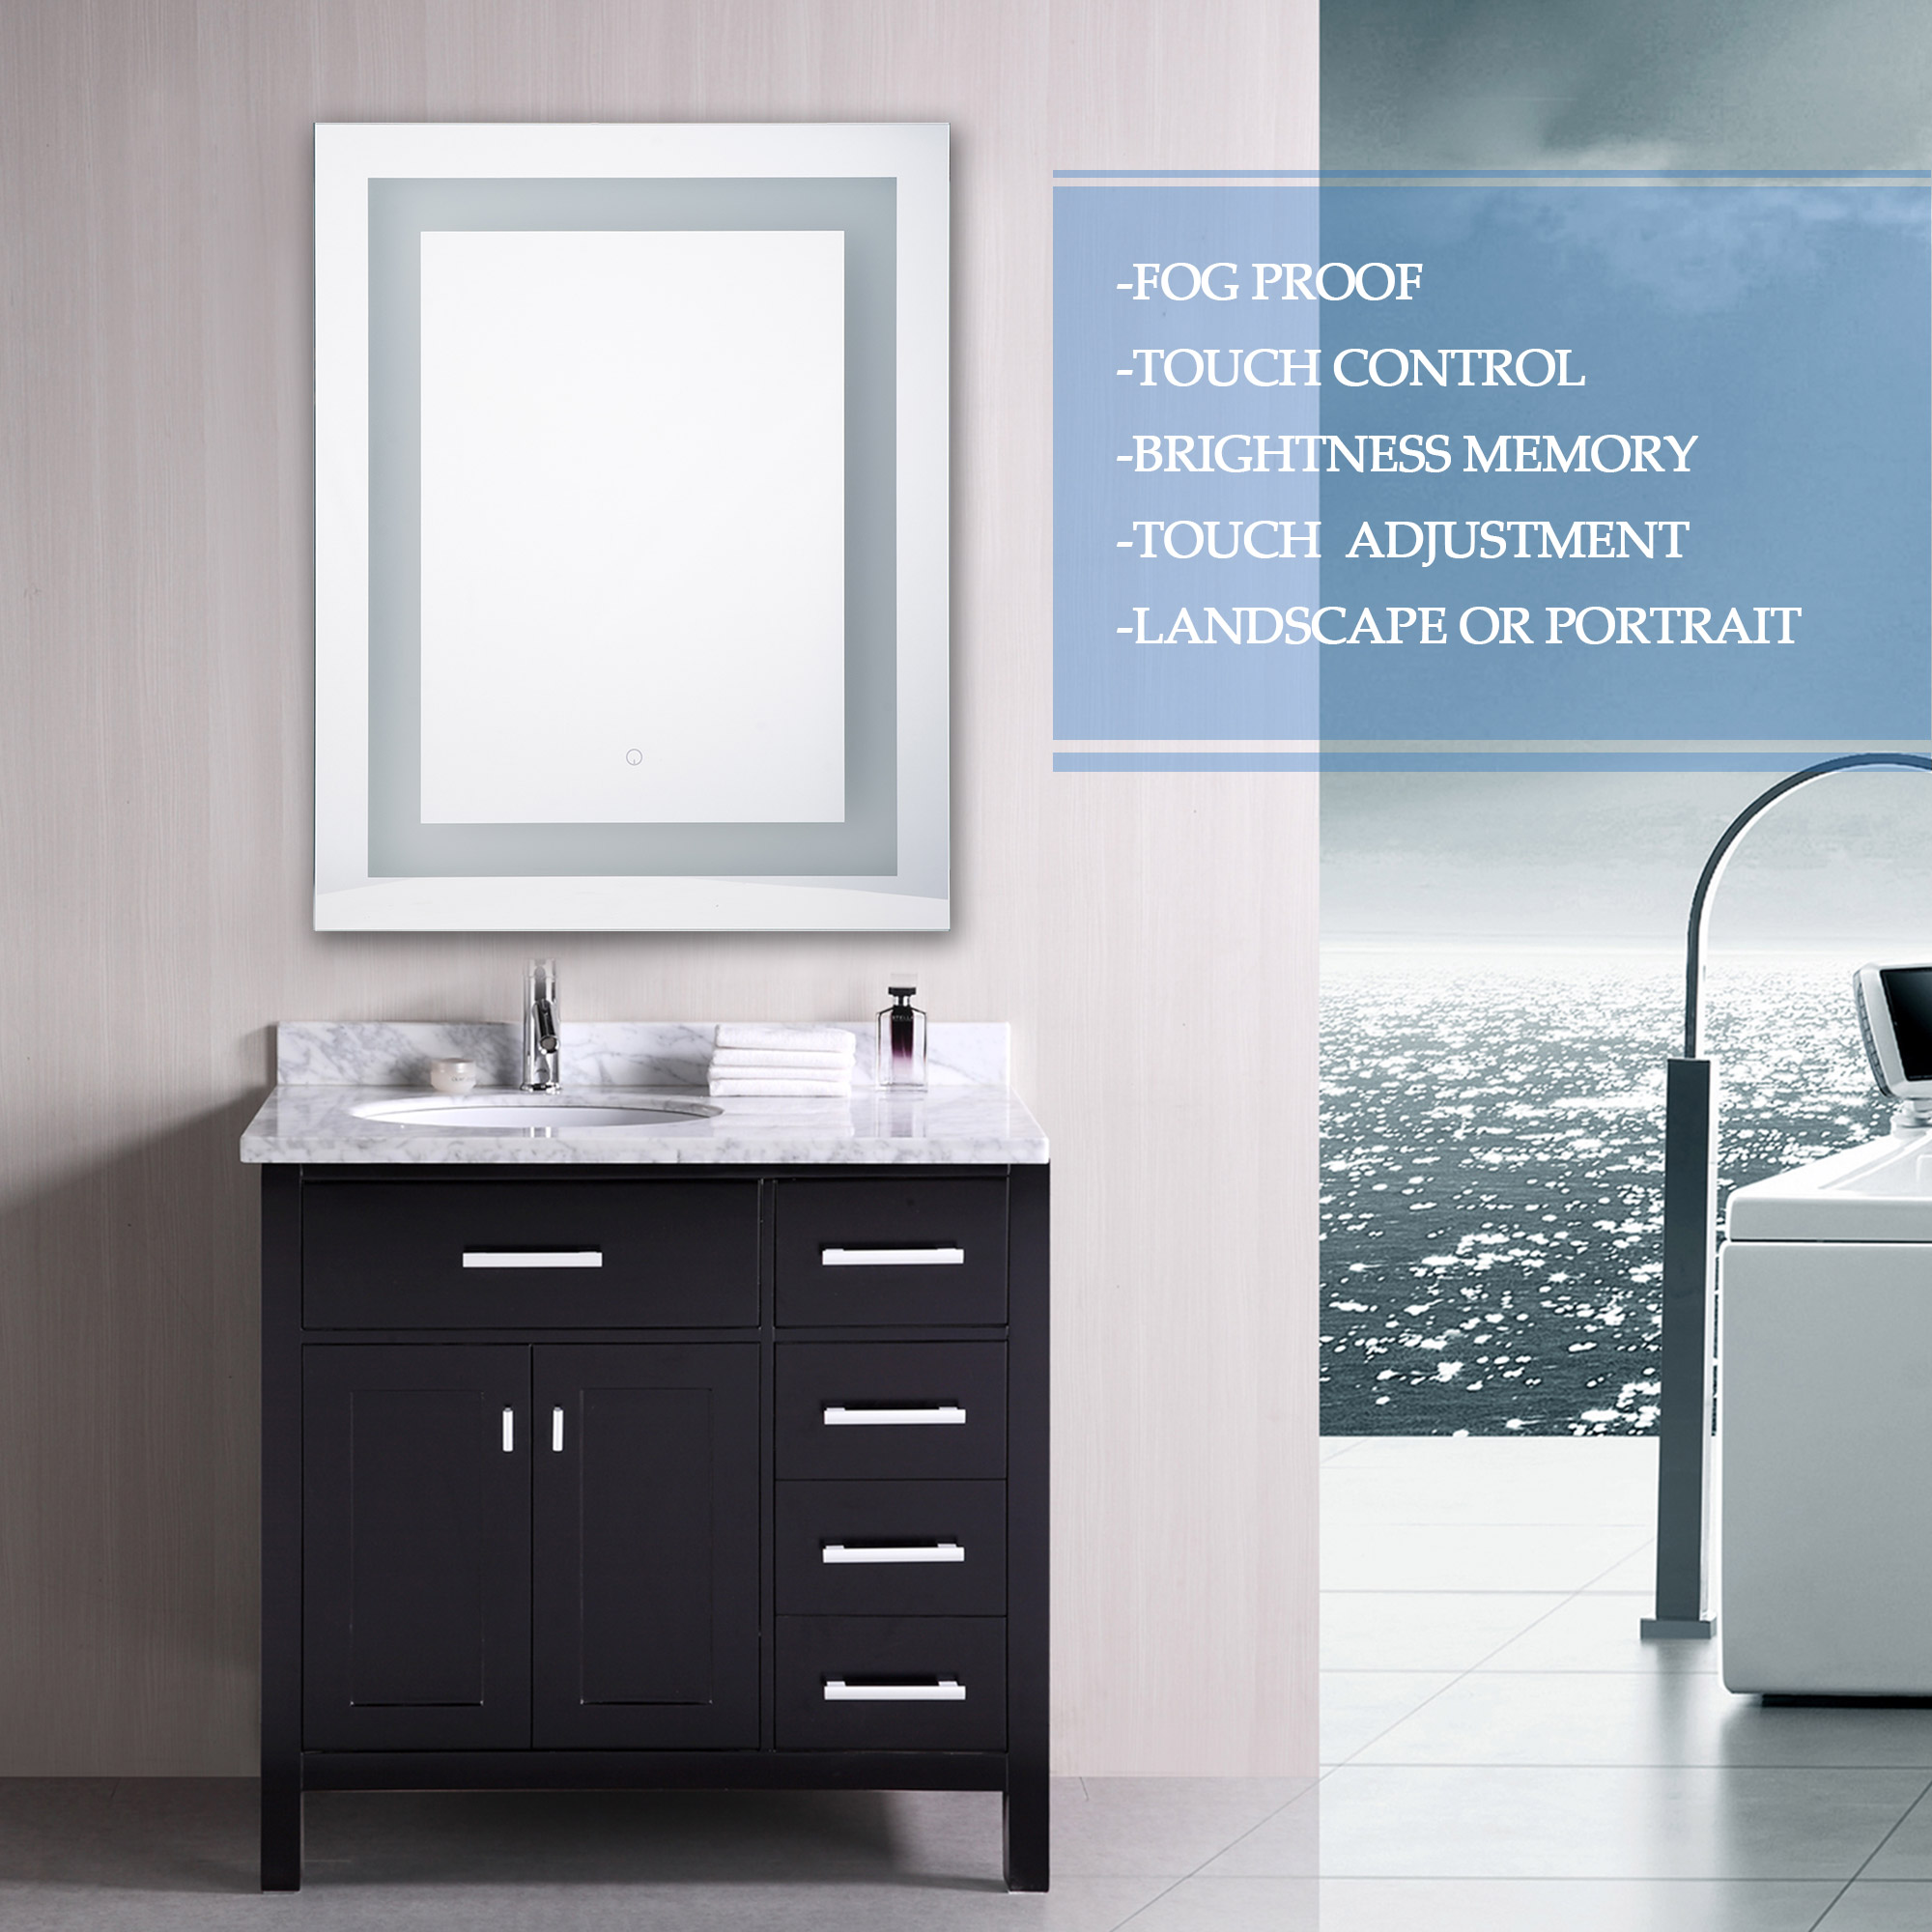 30 In. X 24 In. LED Wall Mounted Bathroom Lighted Mirror Vanity Dimmable